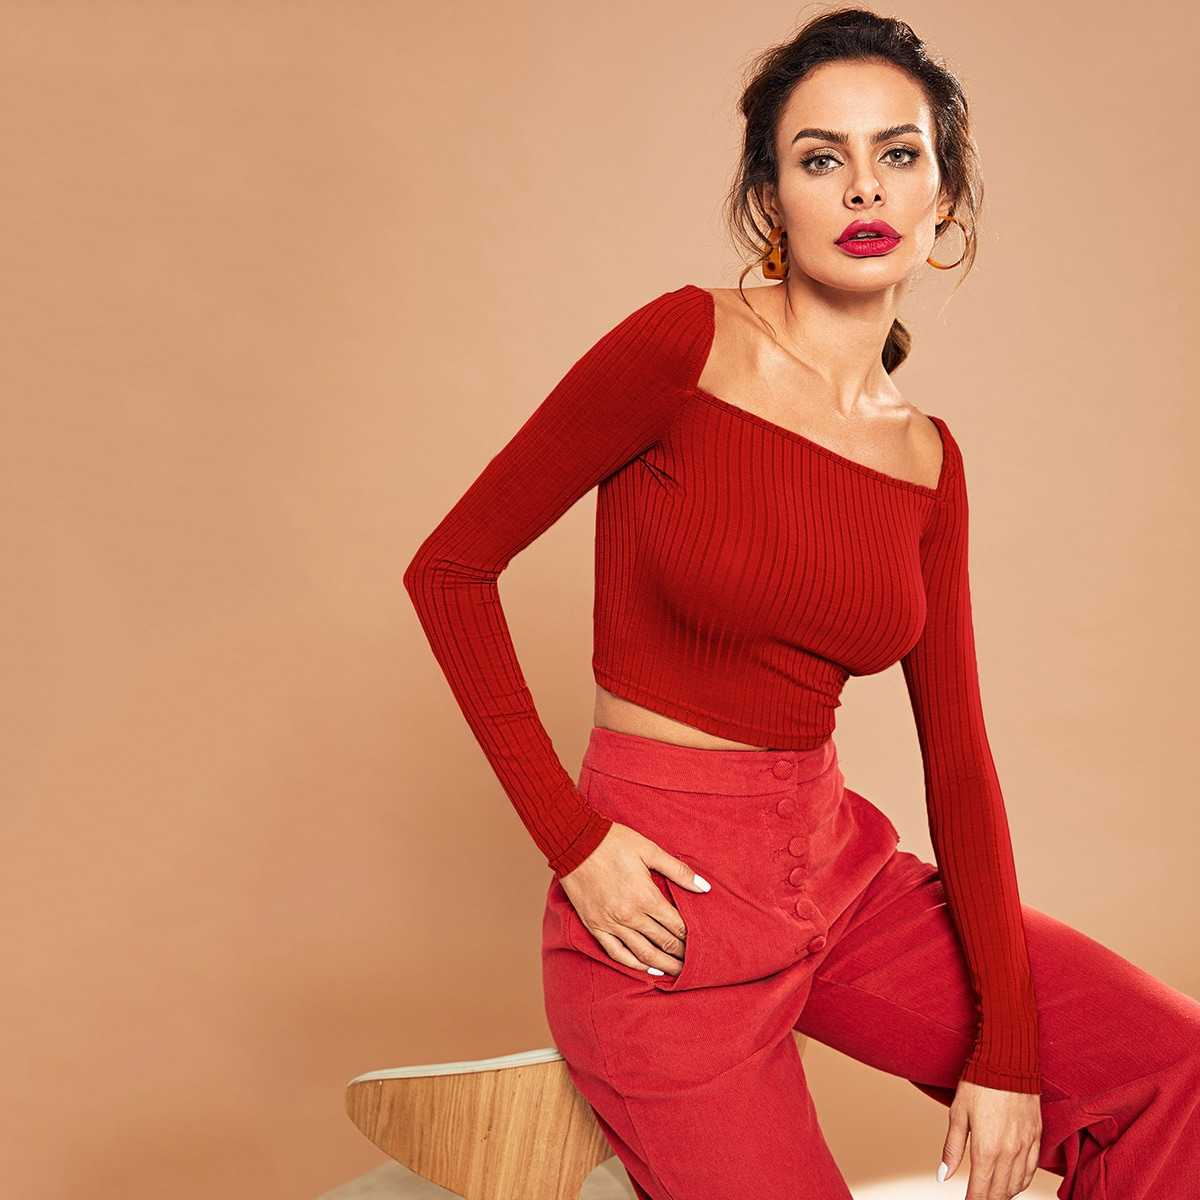 Square Neck Ribbed Knit Crop Tee in Red by ROMWE on GOOFASH